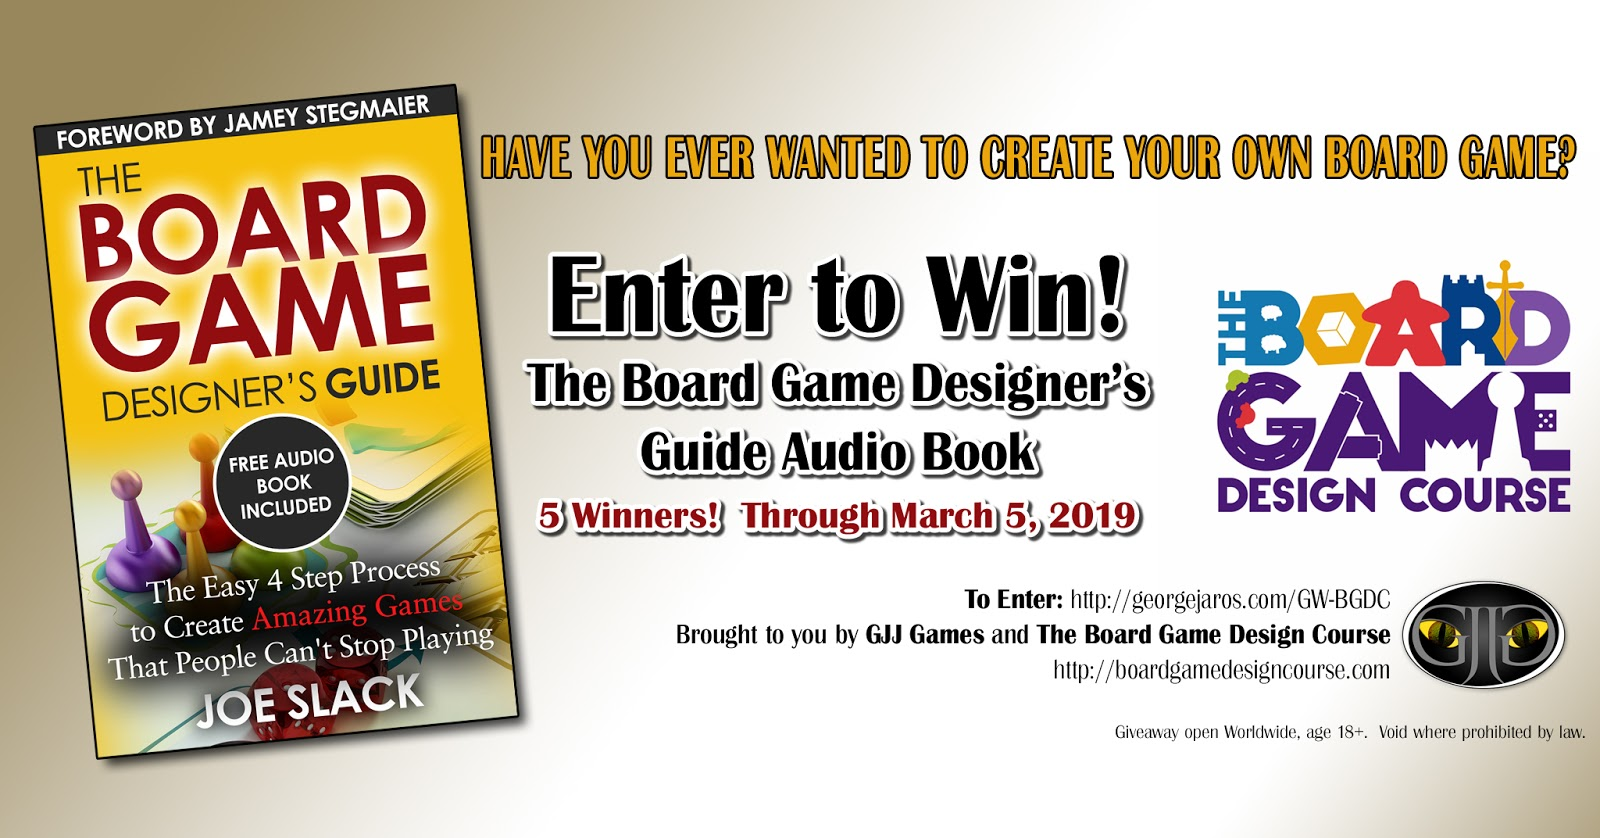 GJJ Games: Giveaway: Win One of Five Free Audio Book copies of the